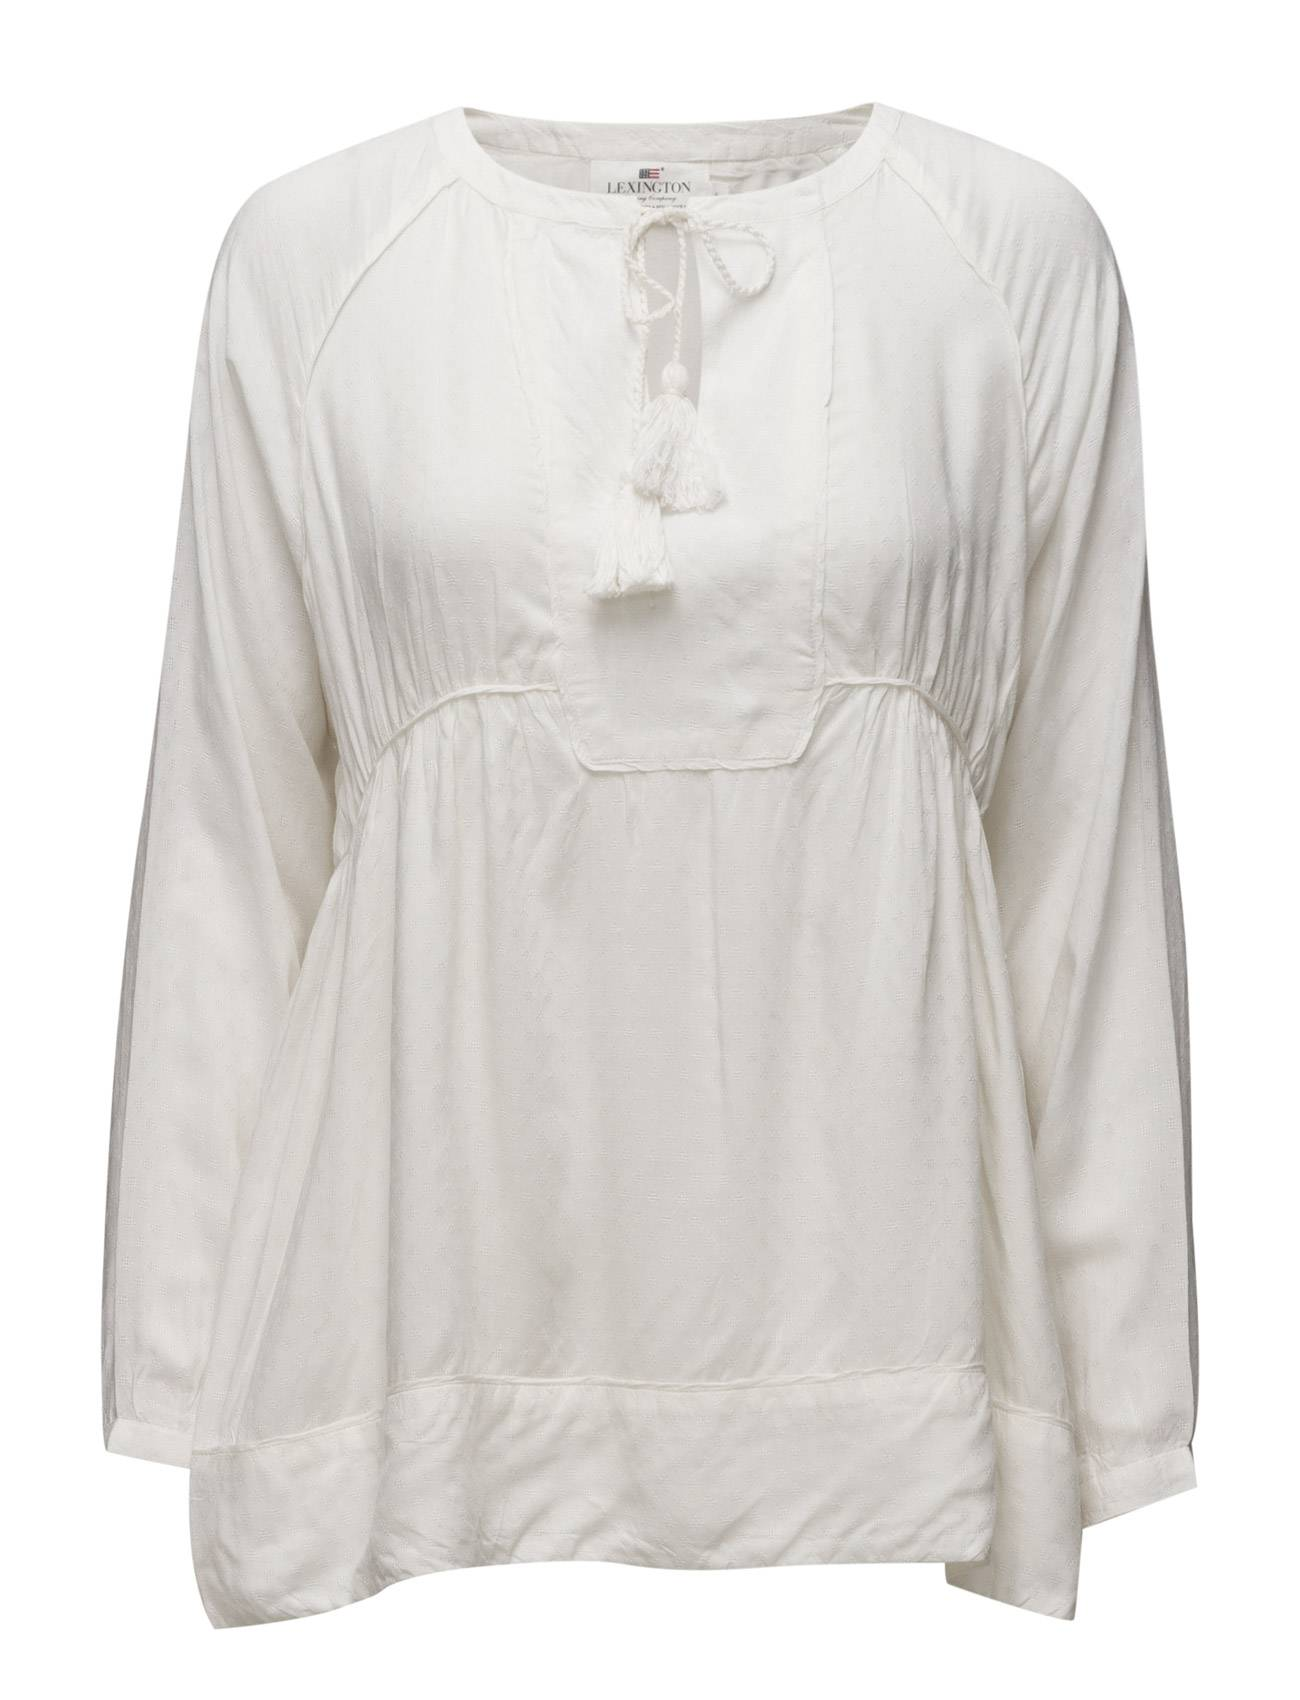 Lexington Company Issie Tunic